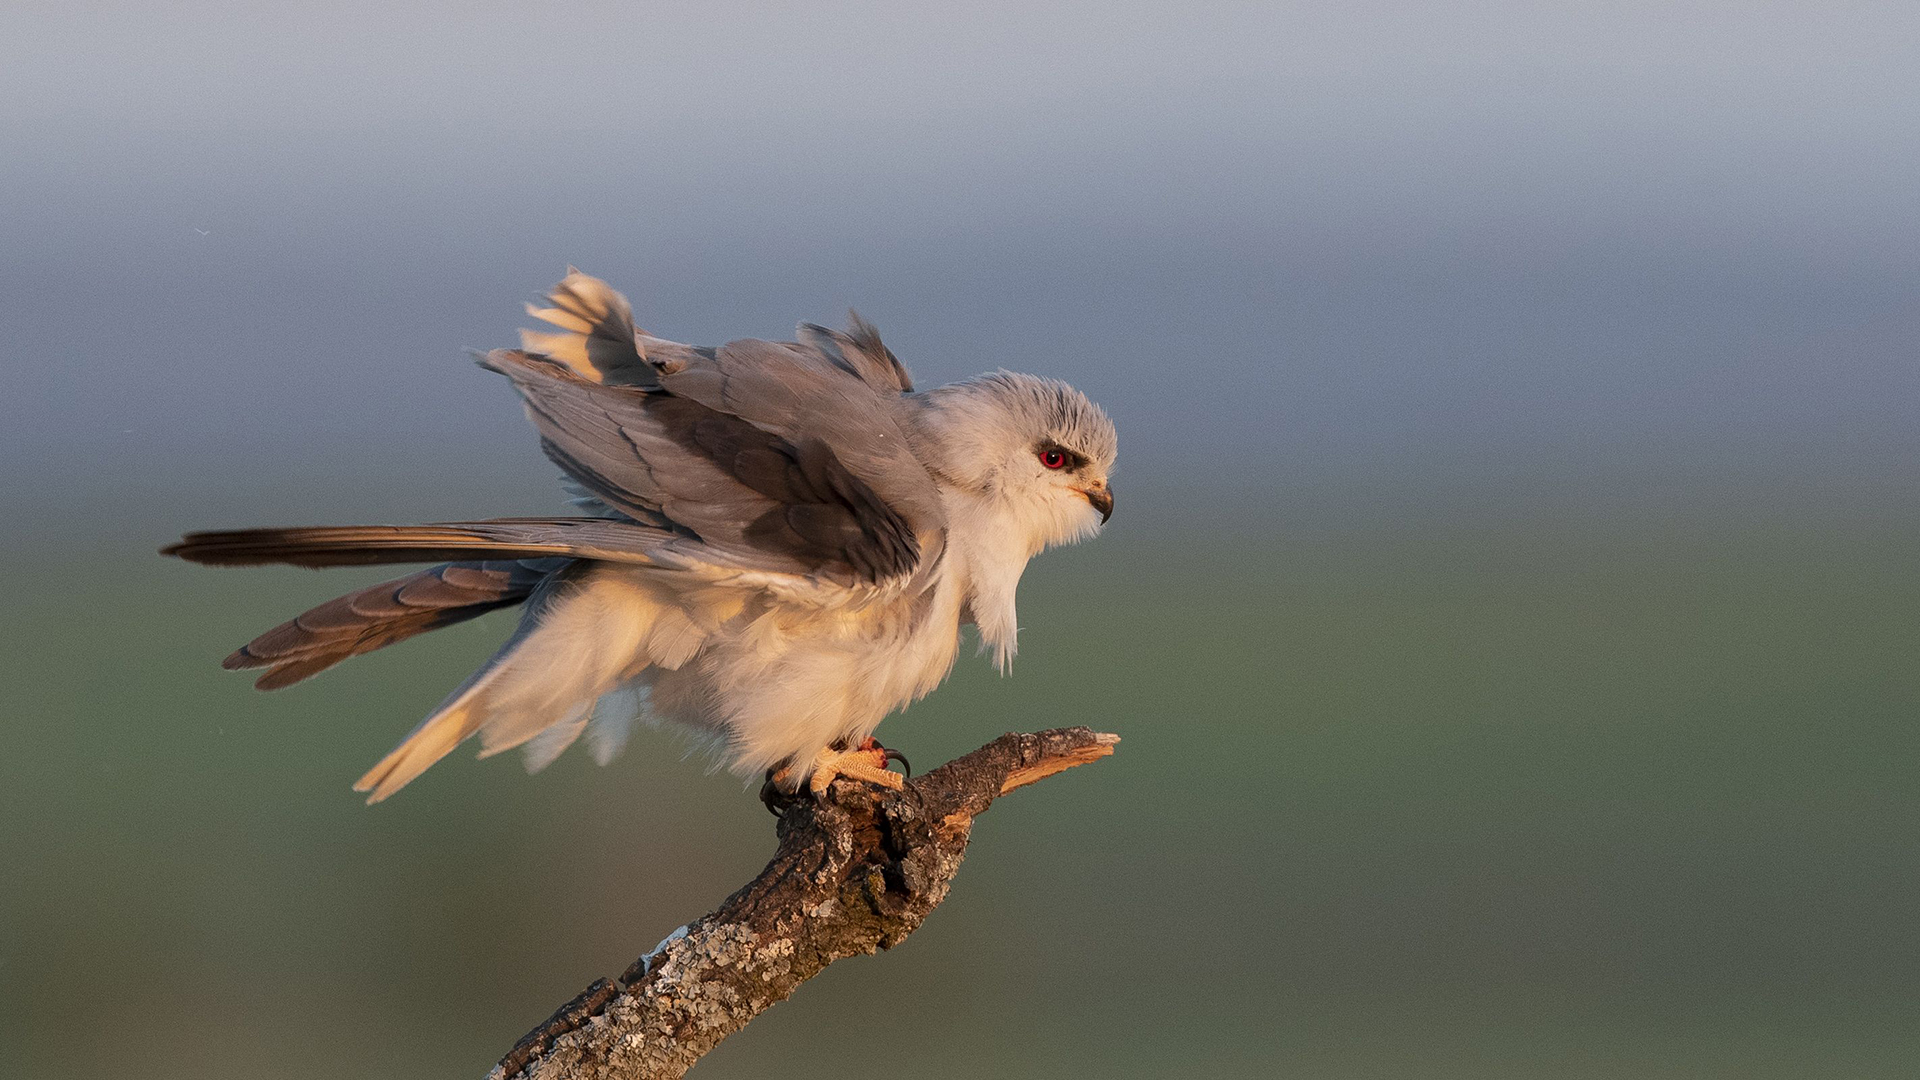 Black winged kite / Gleitaar